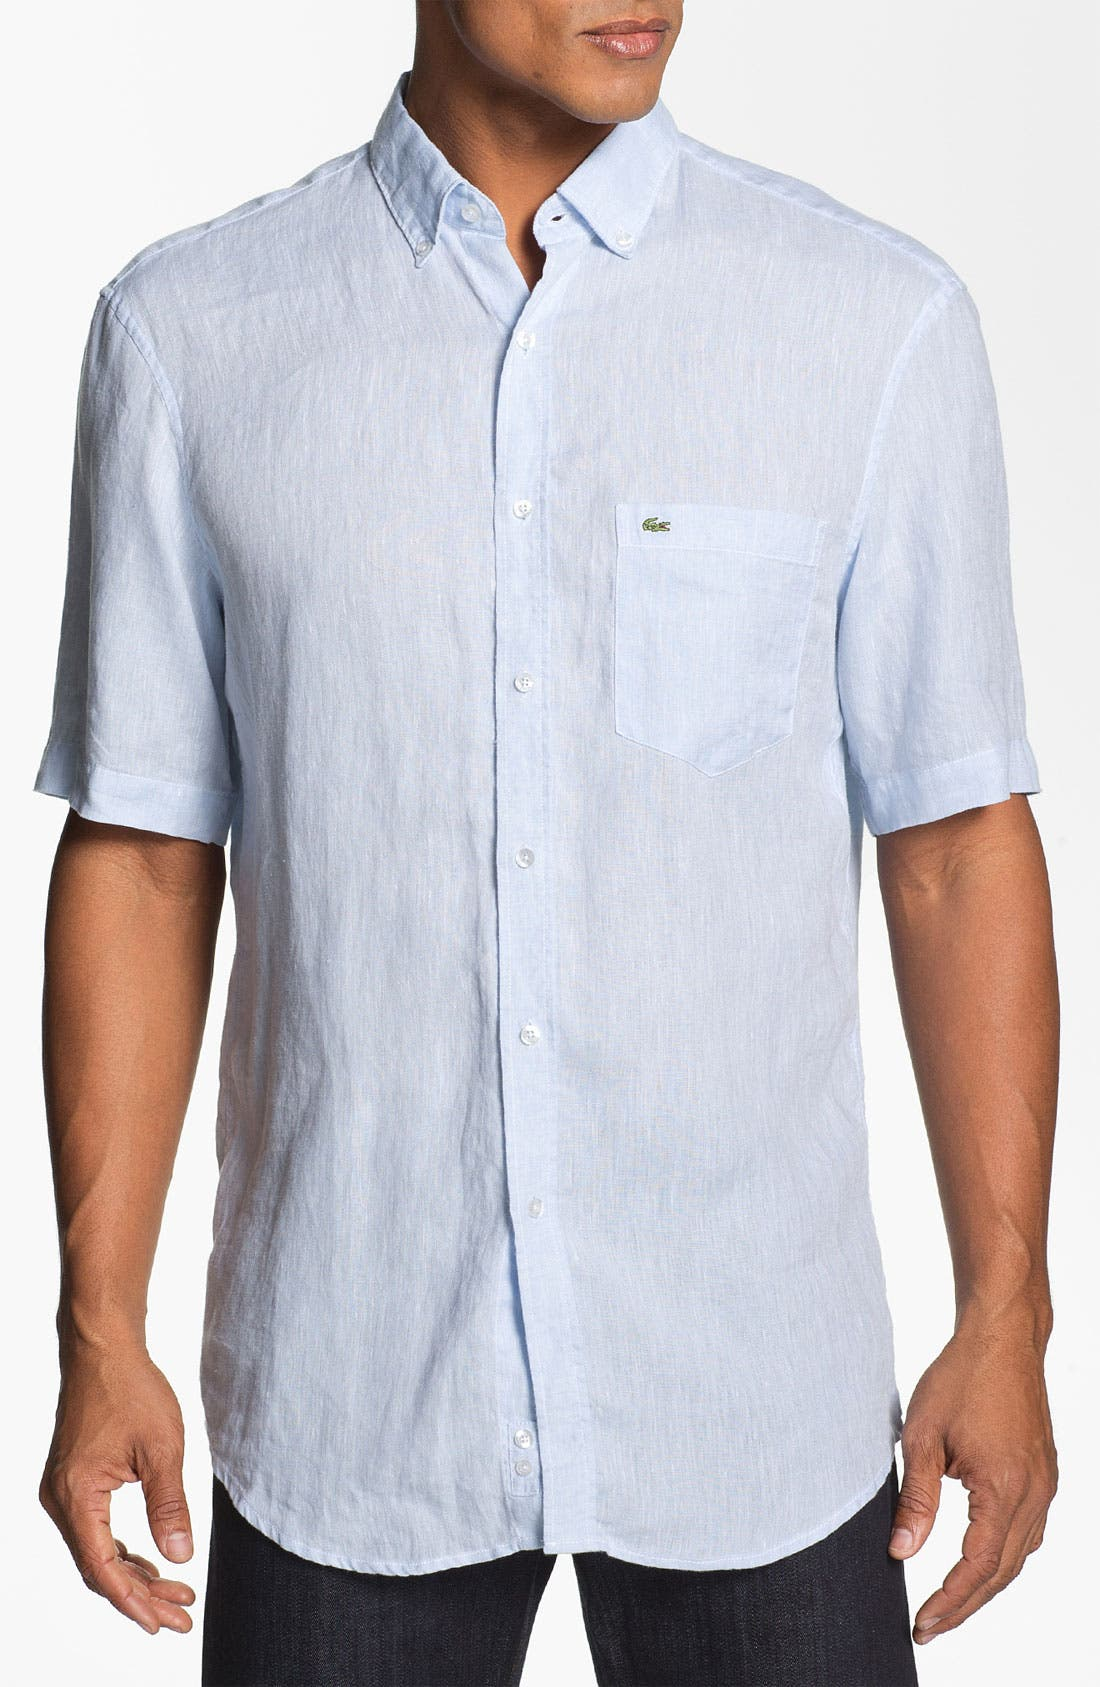 Main Image - Lacoste Short Sleeve Linen Shirt